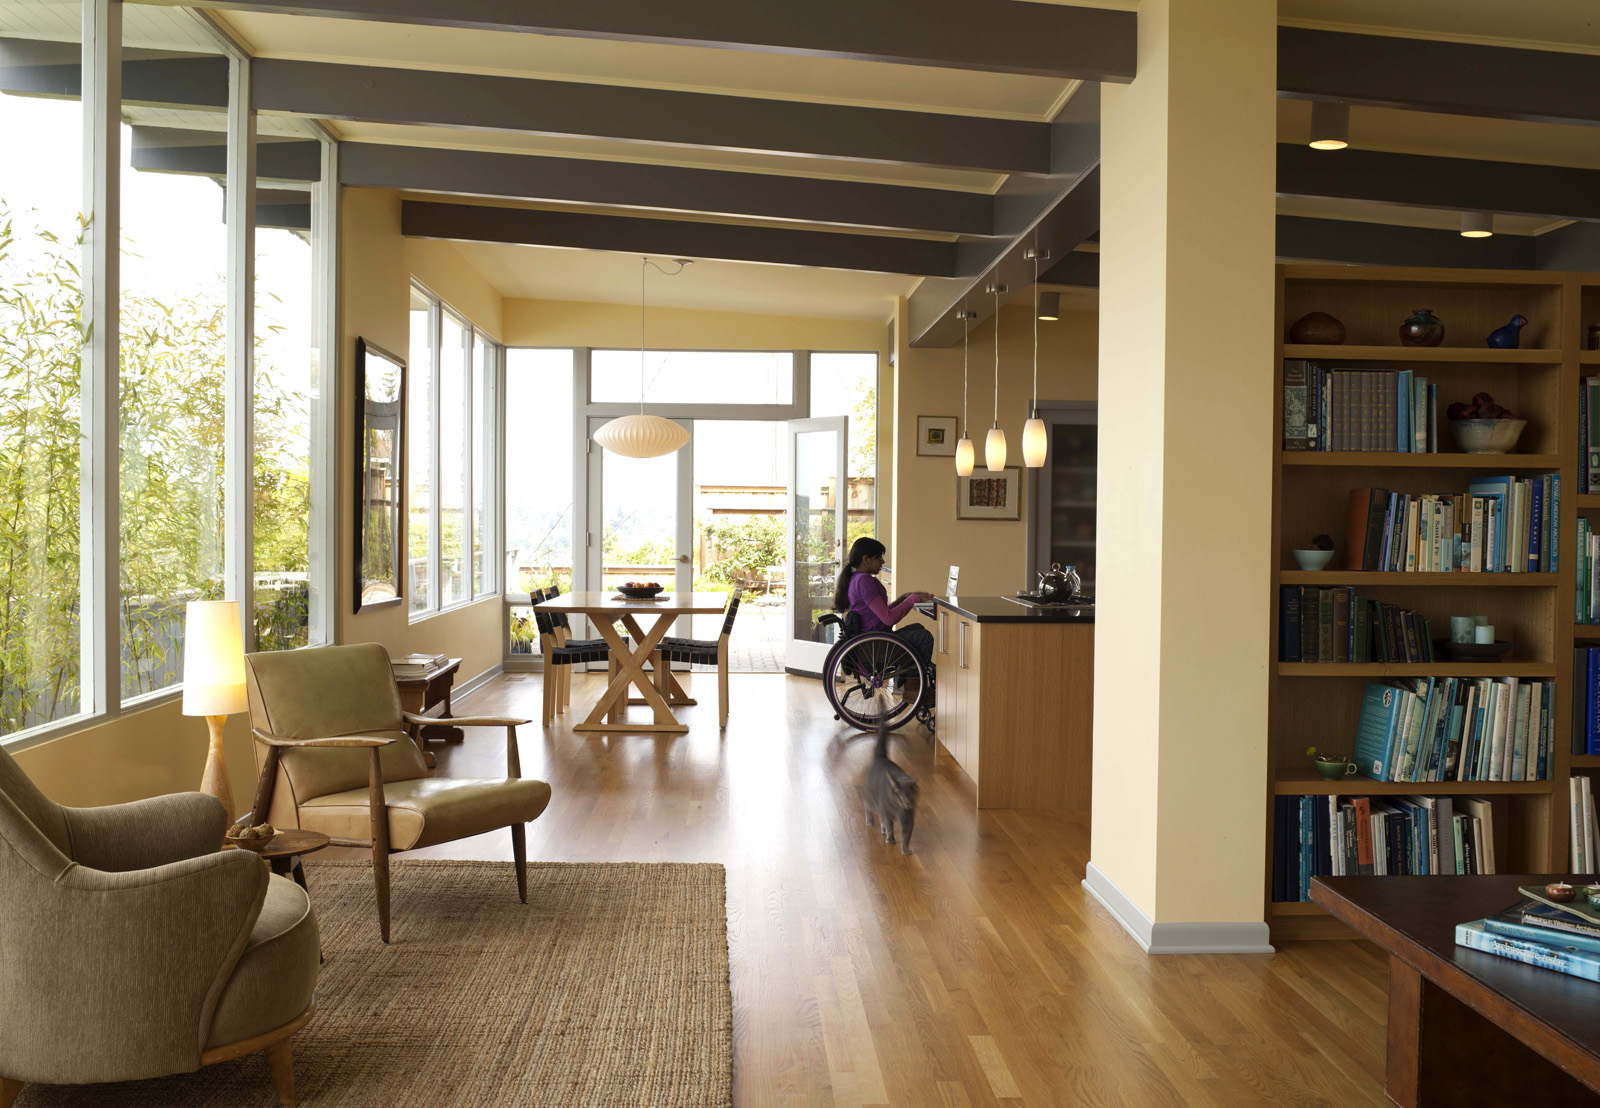 4 steps to a wheelchair accessible home: decorating